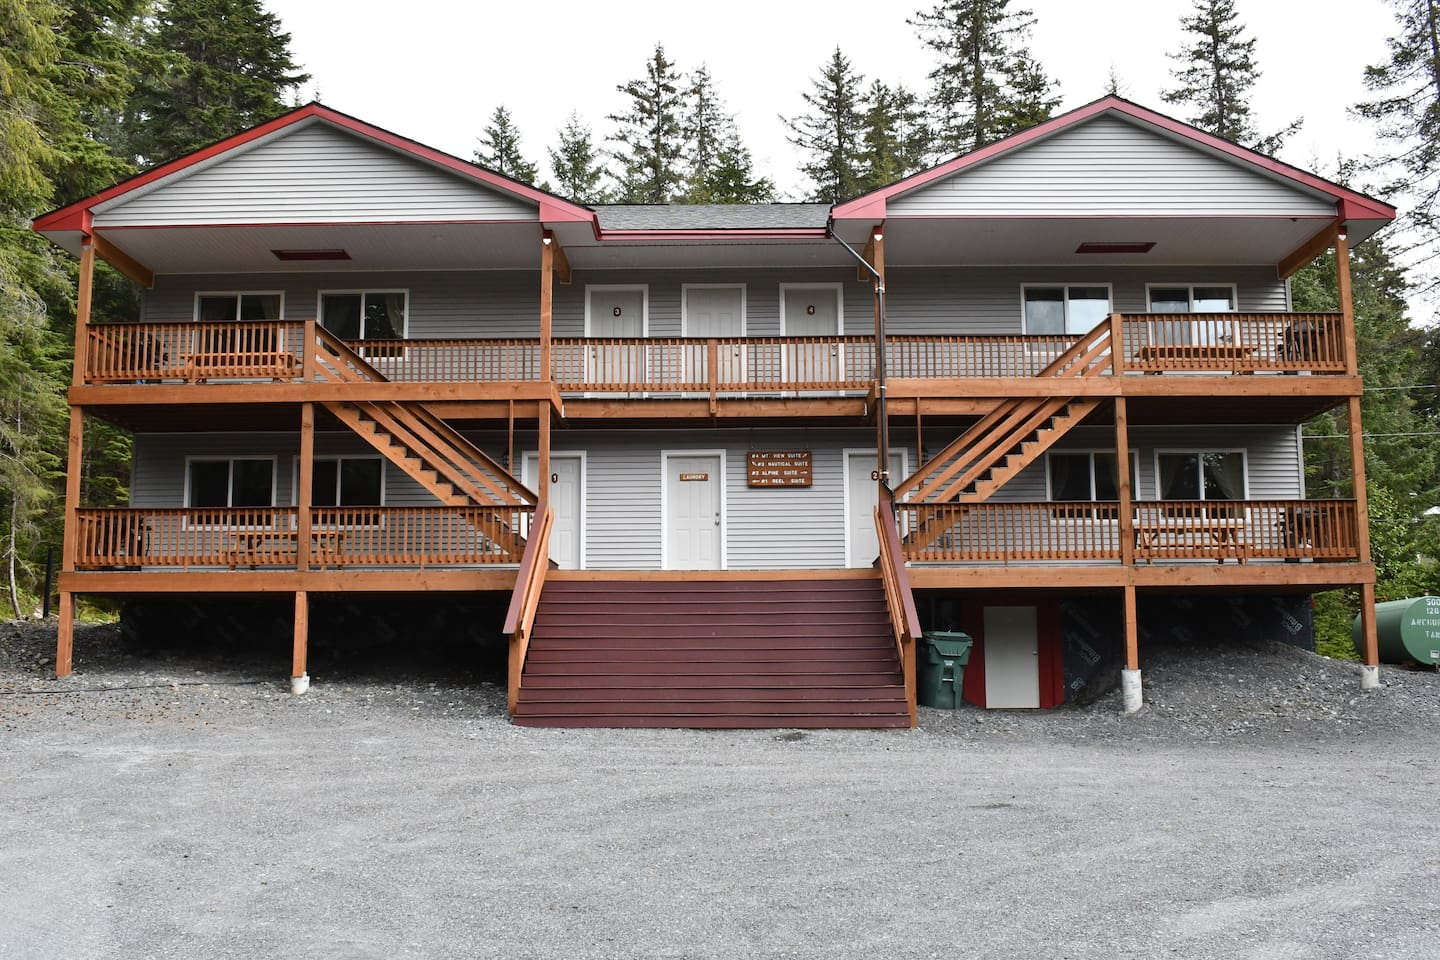 This small Lodge is located on almost one full acre of land with gorgeous mountain views from each unit while being surrounded by Alaska's natural beauty.